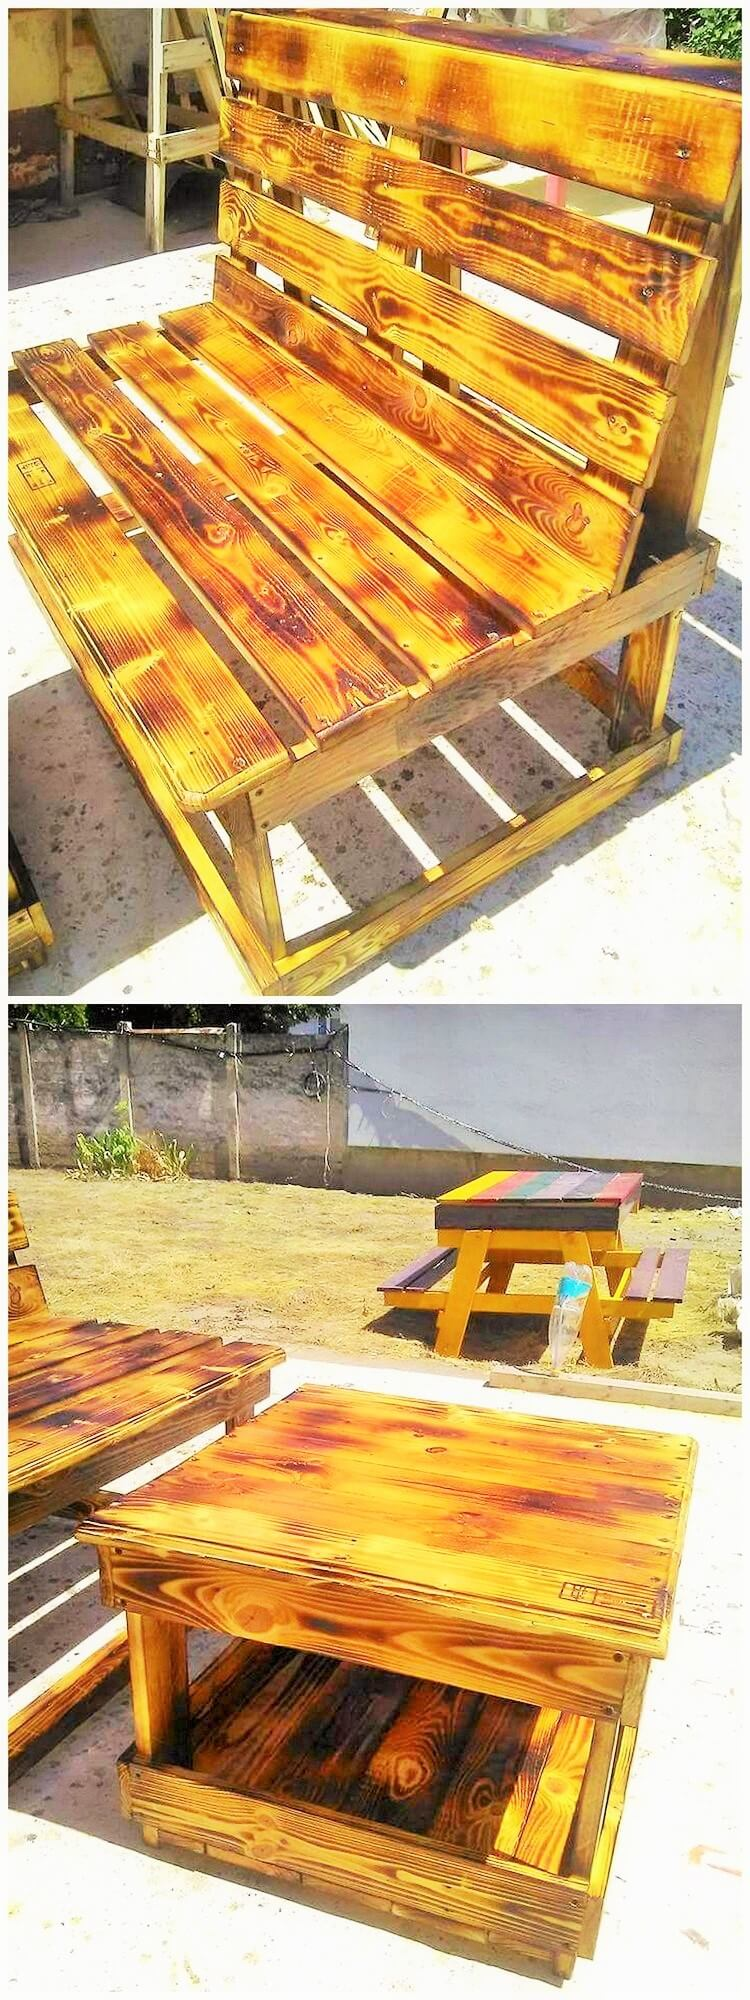 wooden pallets banch and small table